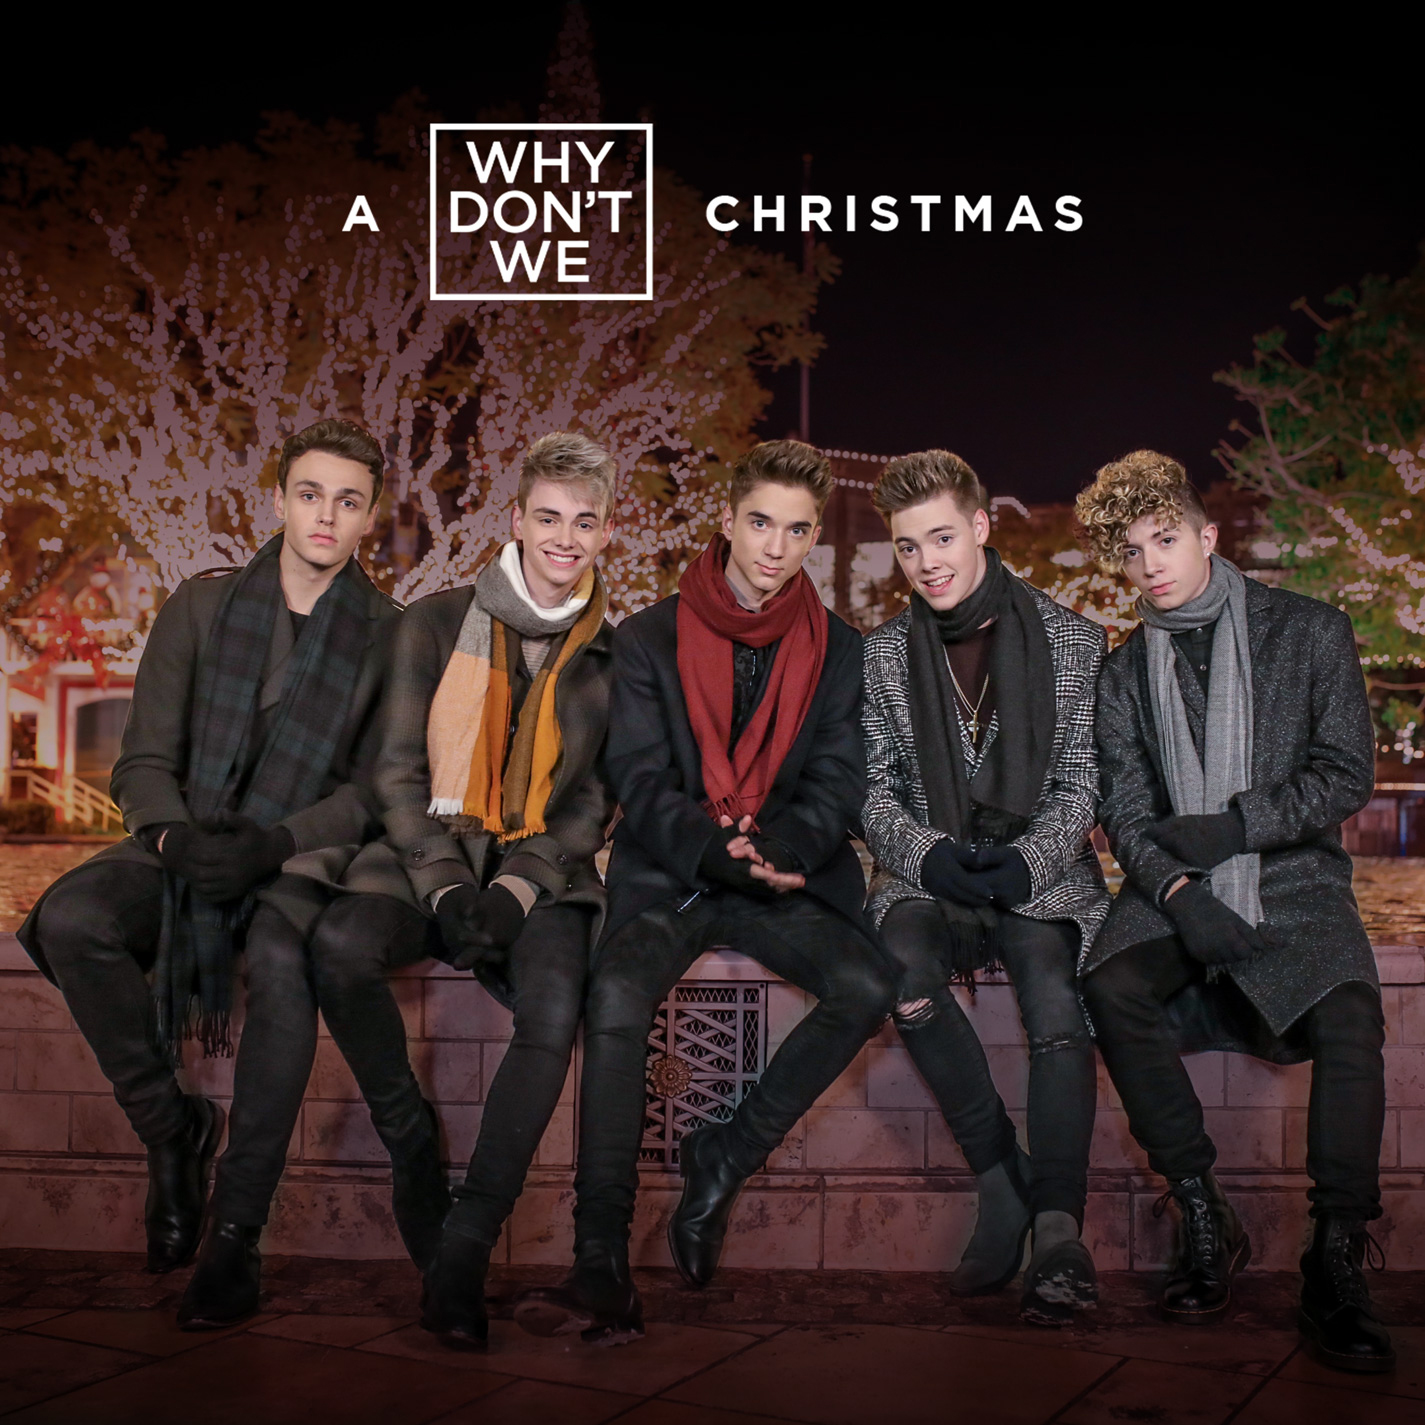 WHY DON' T WE 『A WHY DON' T WE CHRISTMAS』